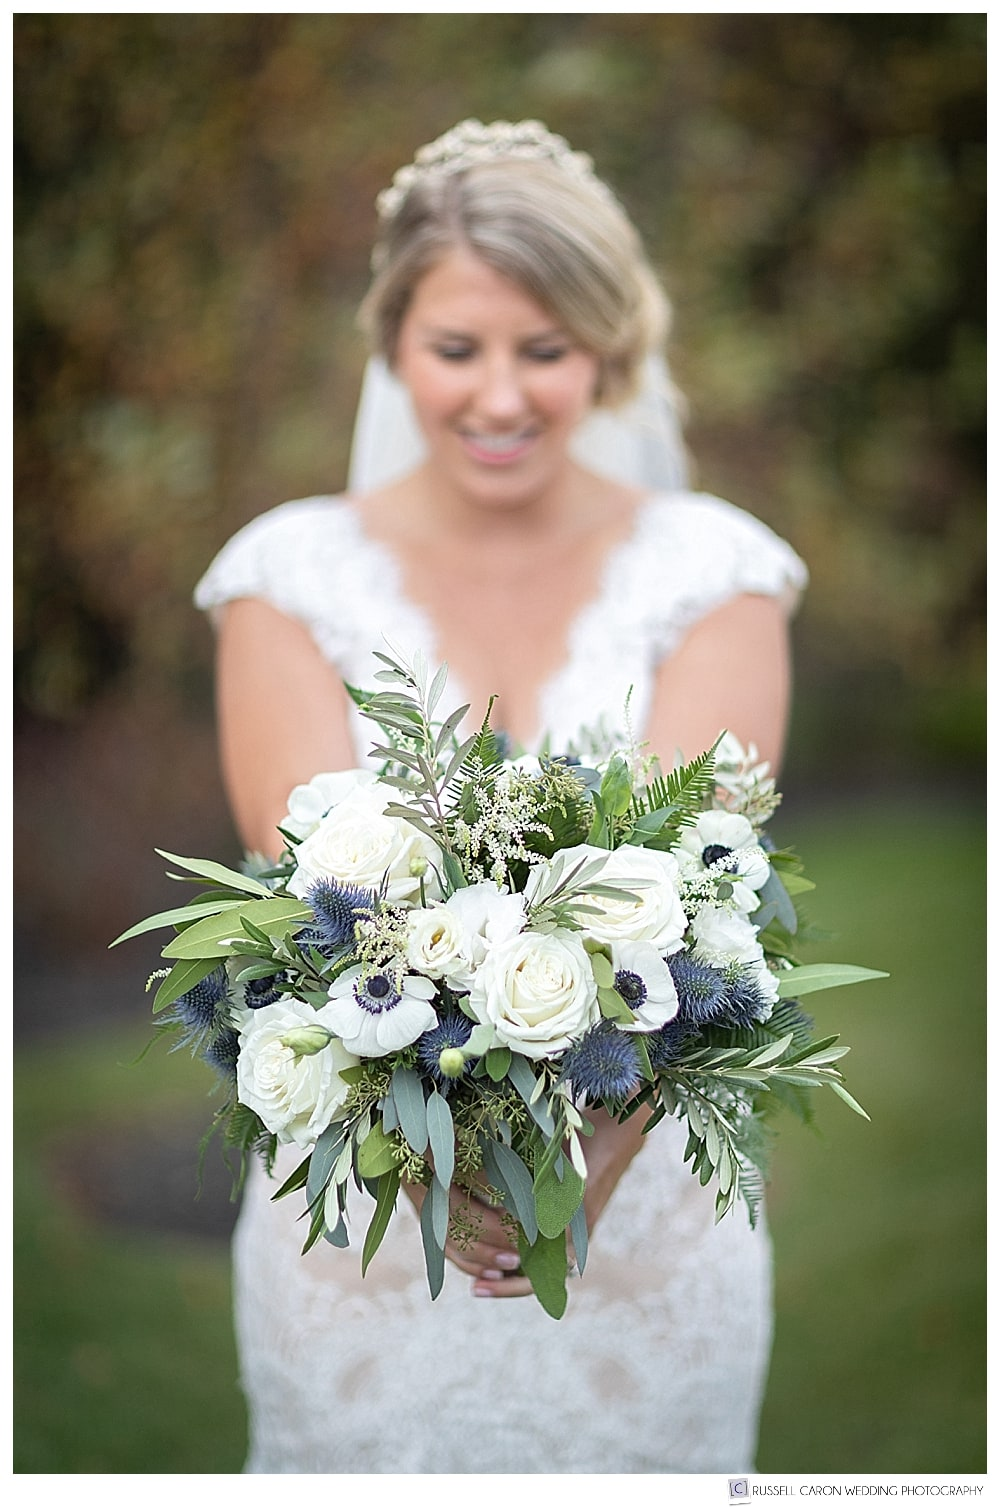 bride holding white, green and blue bridal bouquet from York Flower Shop